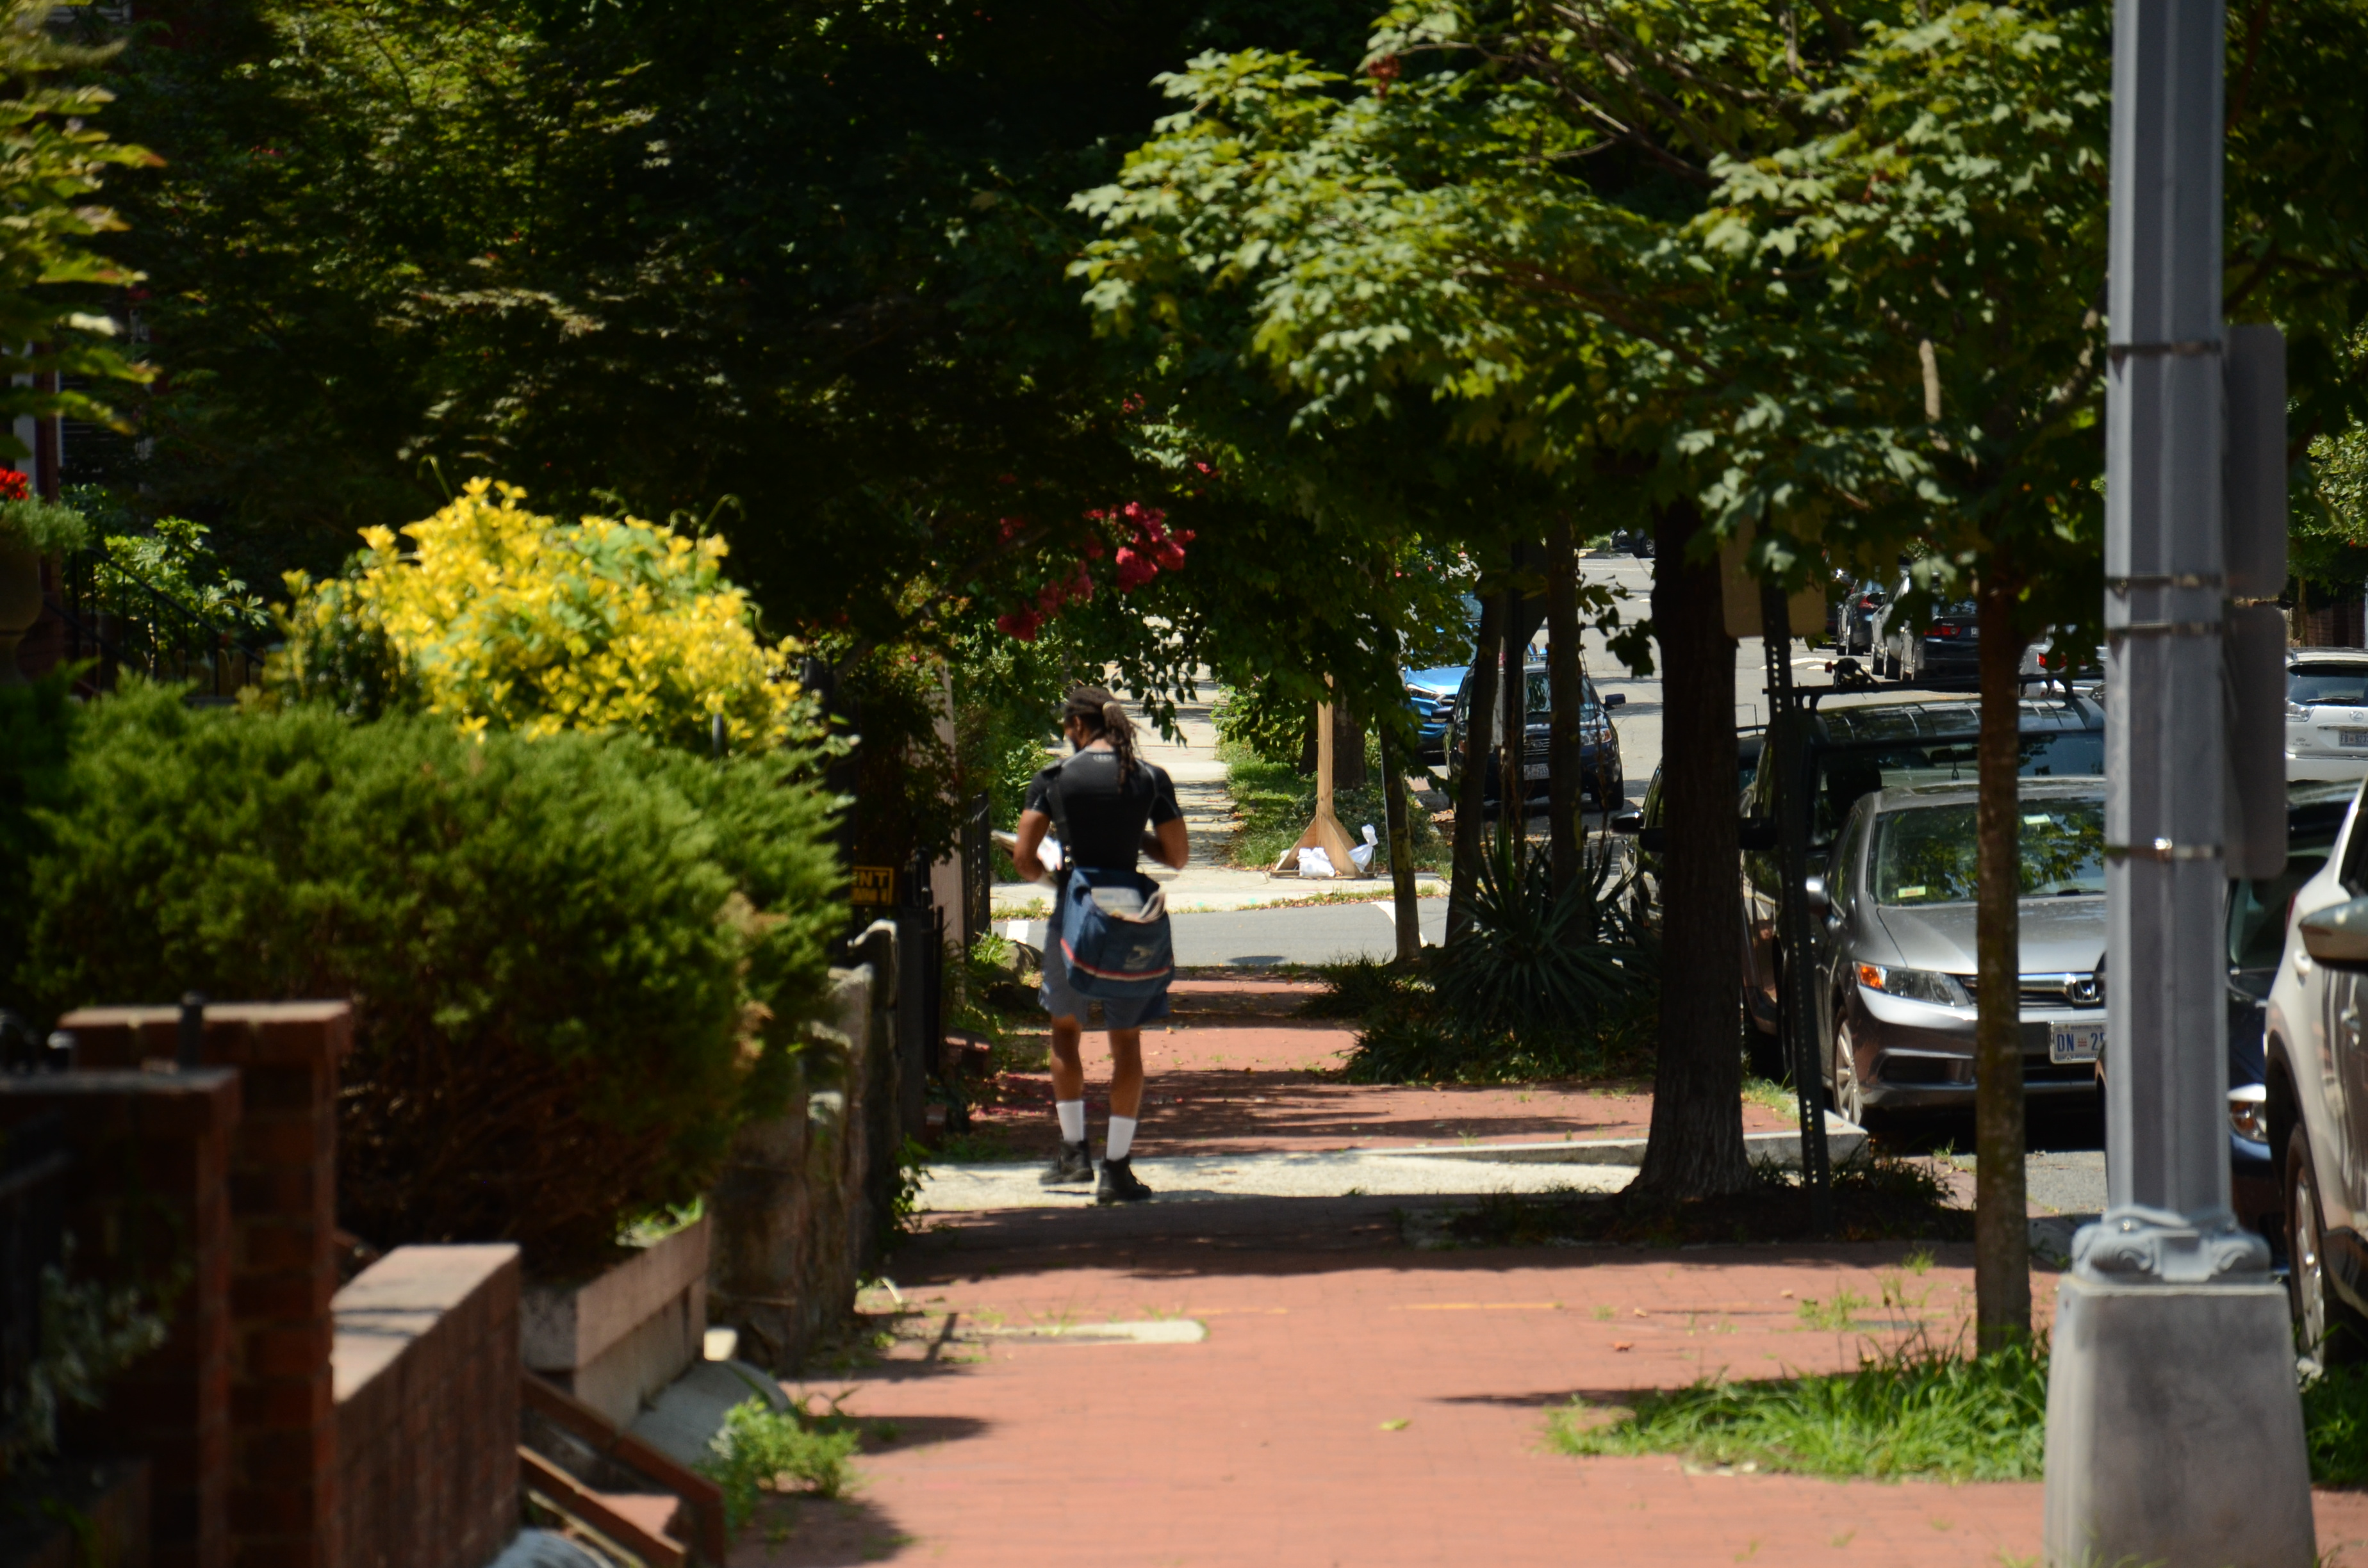 Extreme Heat Doesn't Stop the Mail, Even at the Cost of Postal Workers' Health